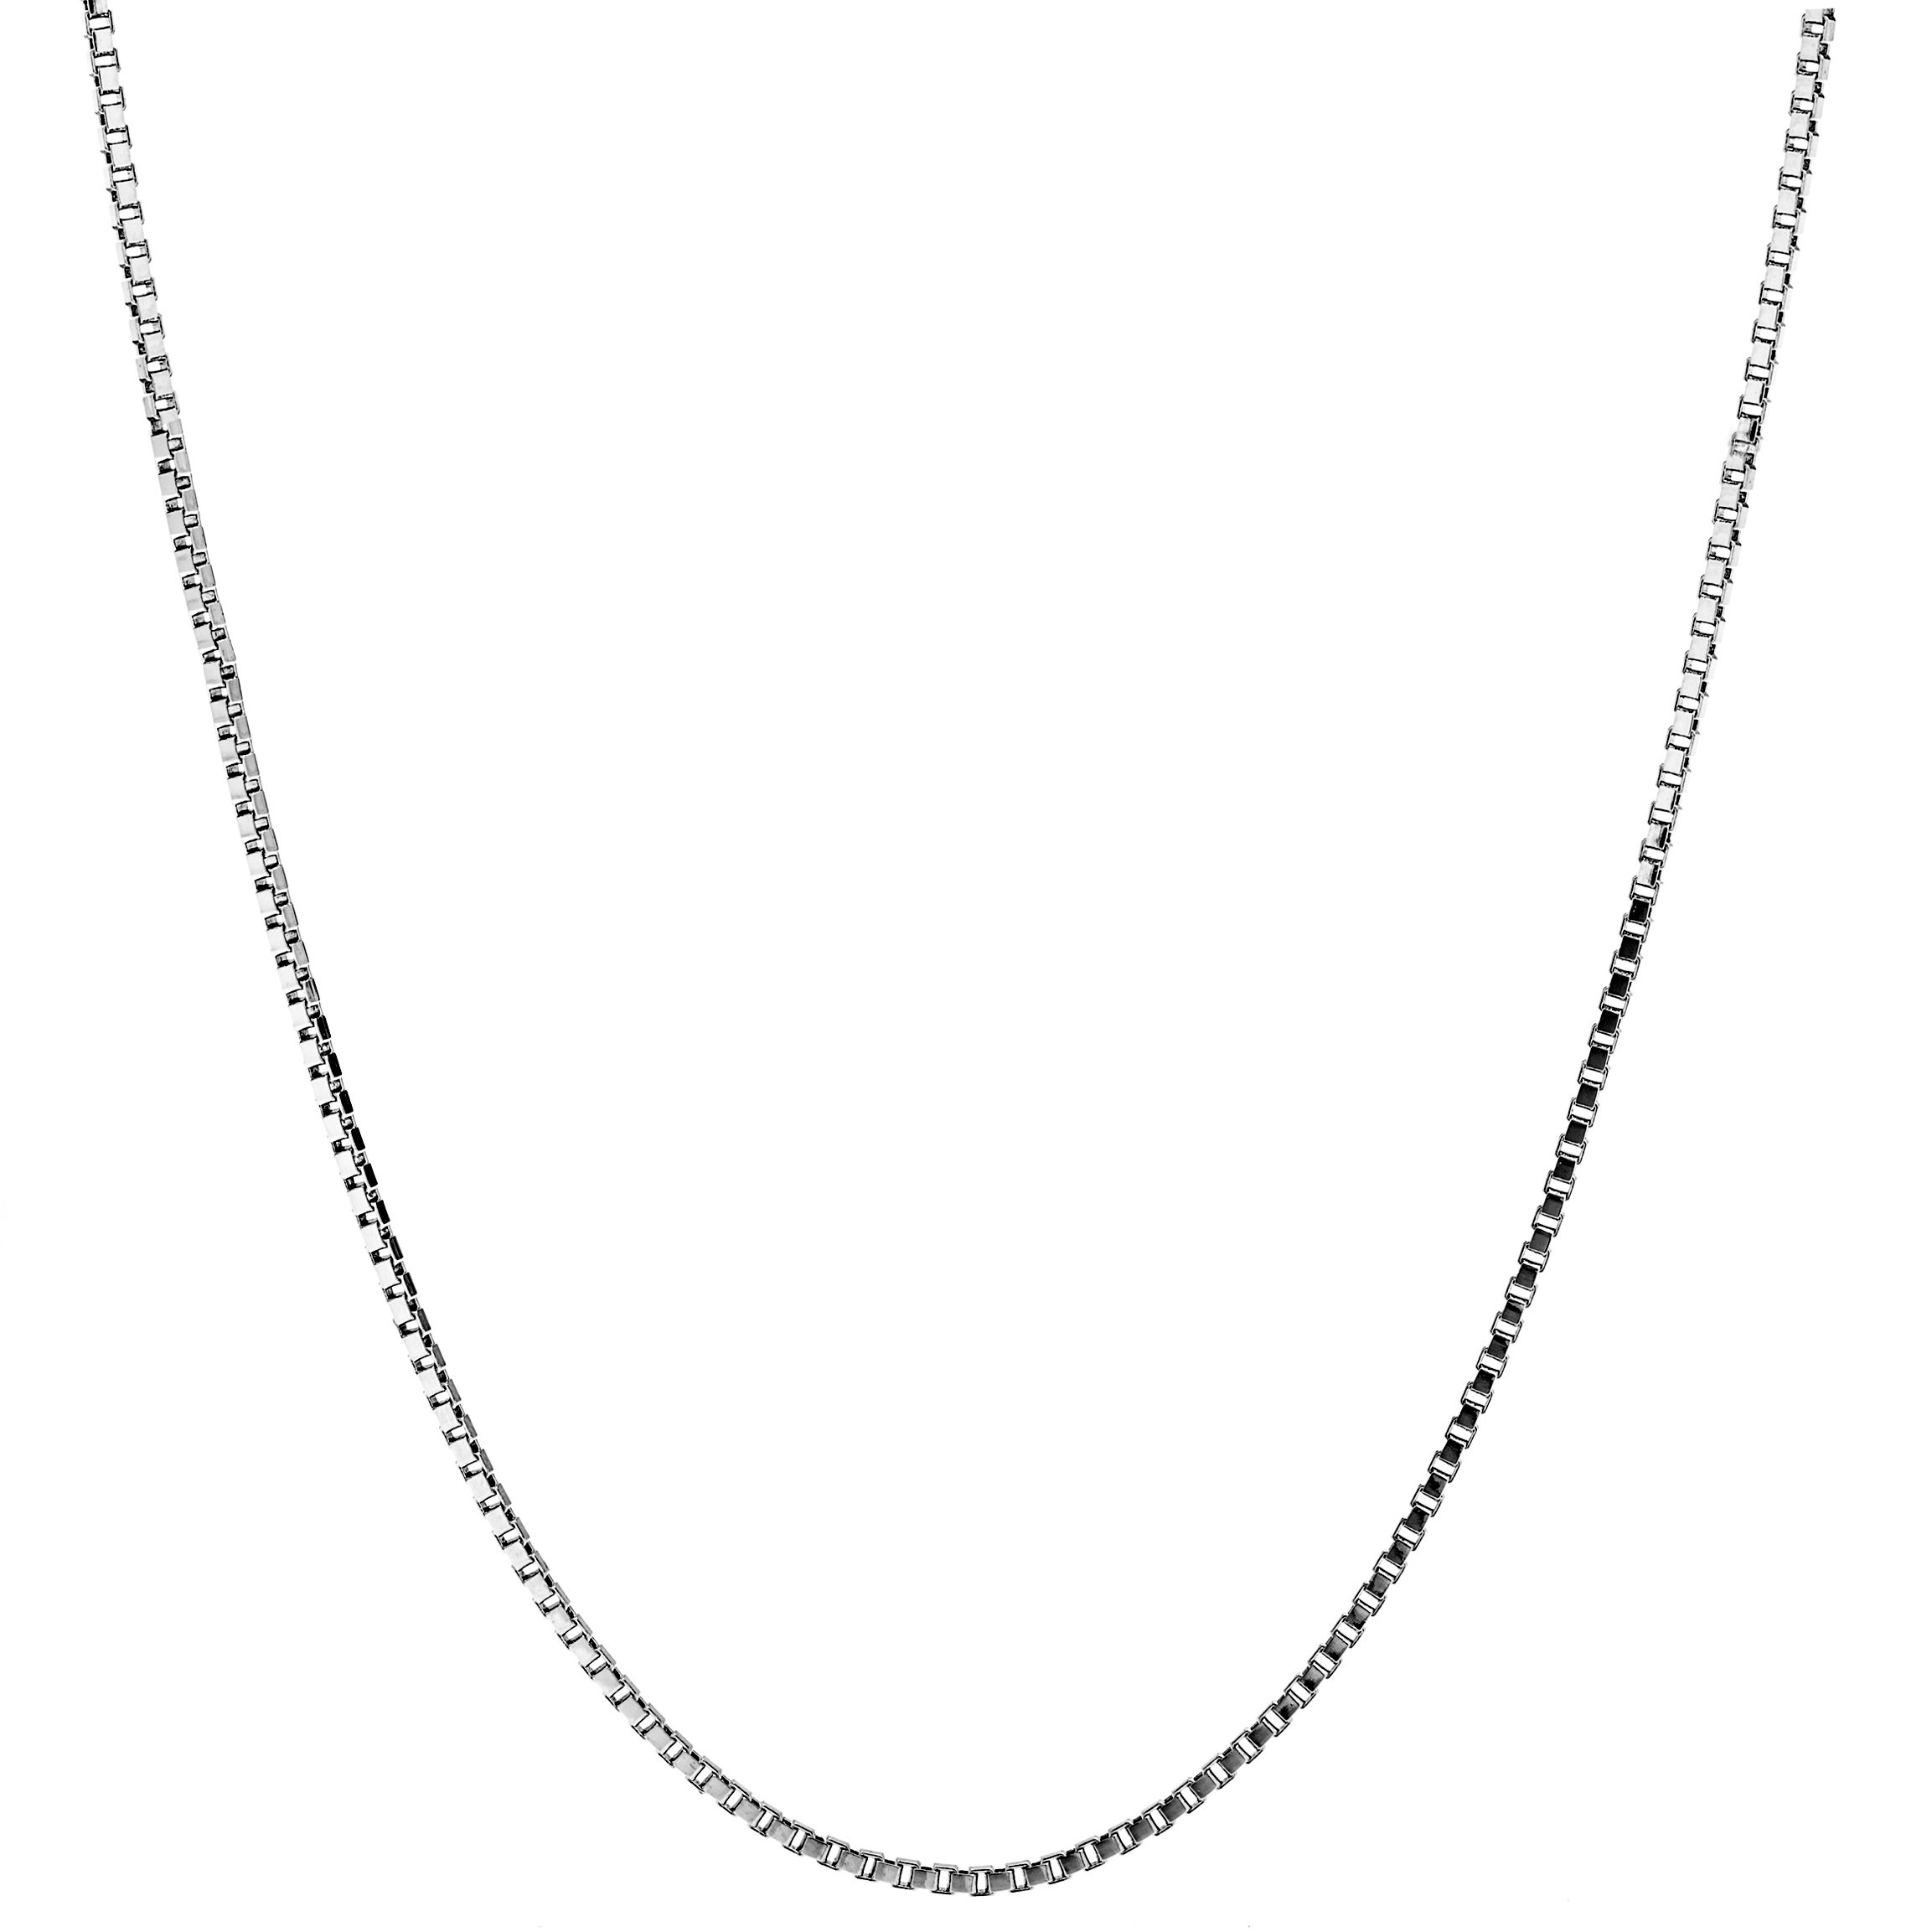 Lifetime Jewelry Pendant Necklace 1.4mm Box Chain of White Gold Rhodium Plated Made Thin for Charms 20 Inches